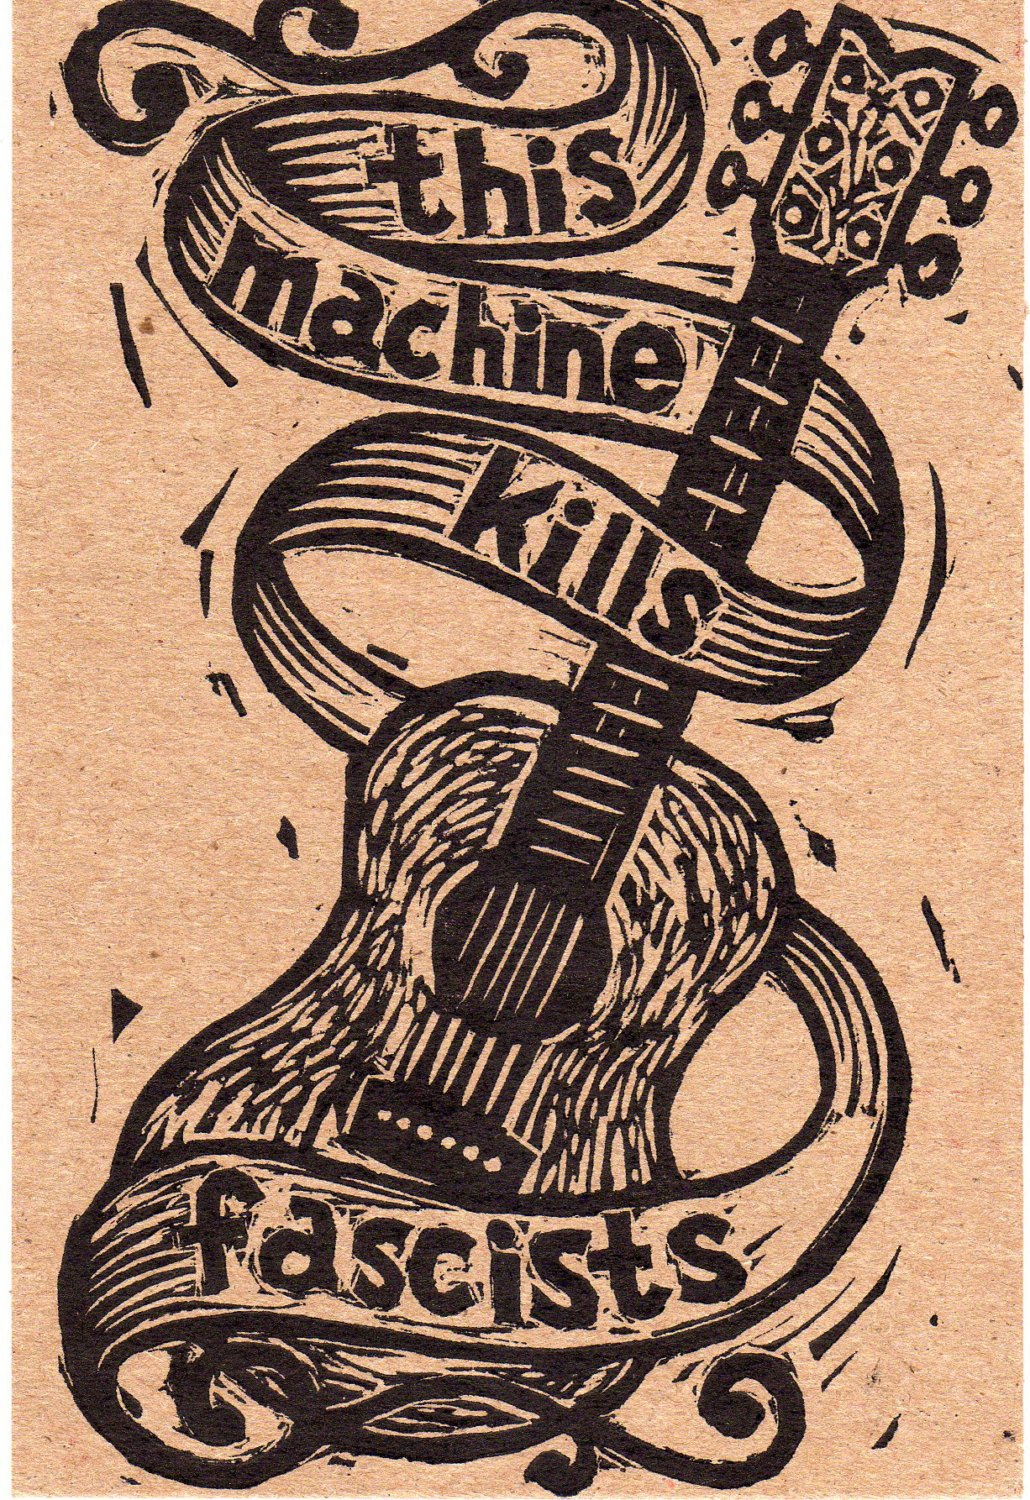 Linocut Postcards 5 Pack This Machine Kills Fascists Letterpress Postcards Woody Guthrie Guitar Linocut - Postcard Set - Hand Printed Cards